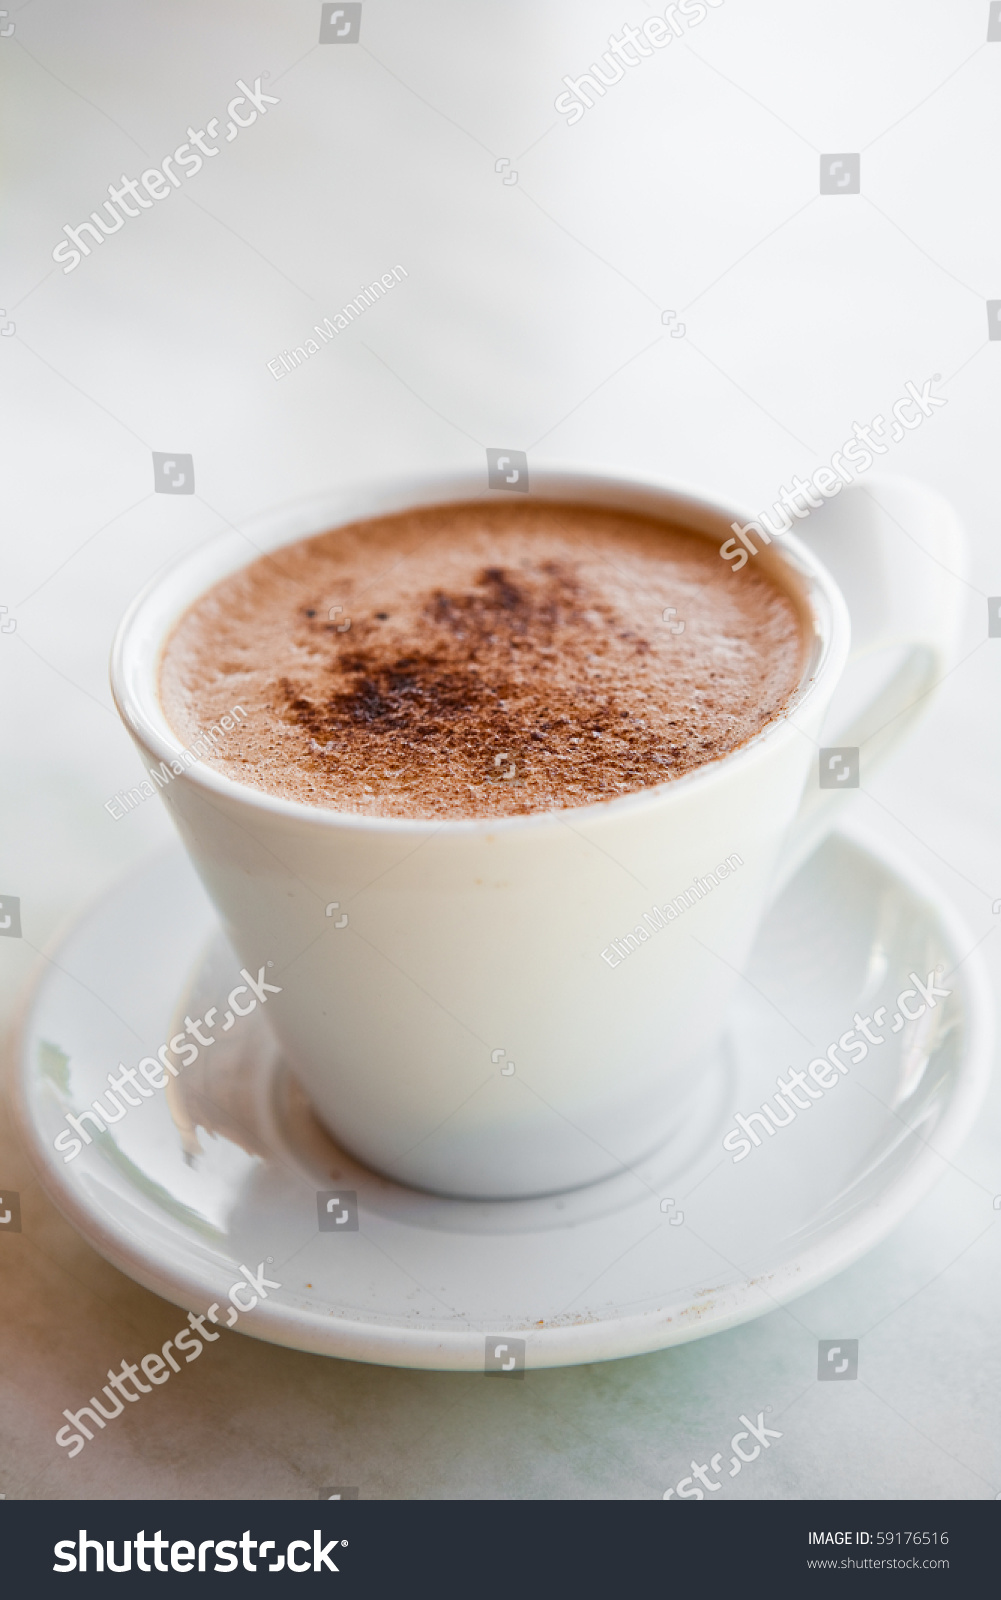 Delicious Hot Chocolate In A White Mug Stock Photo 59176516 ...